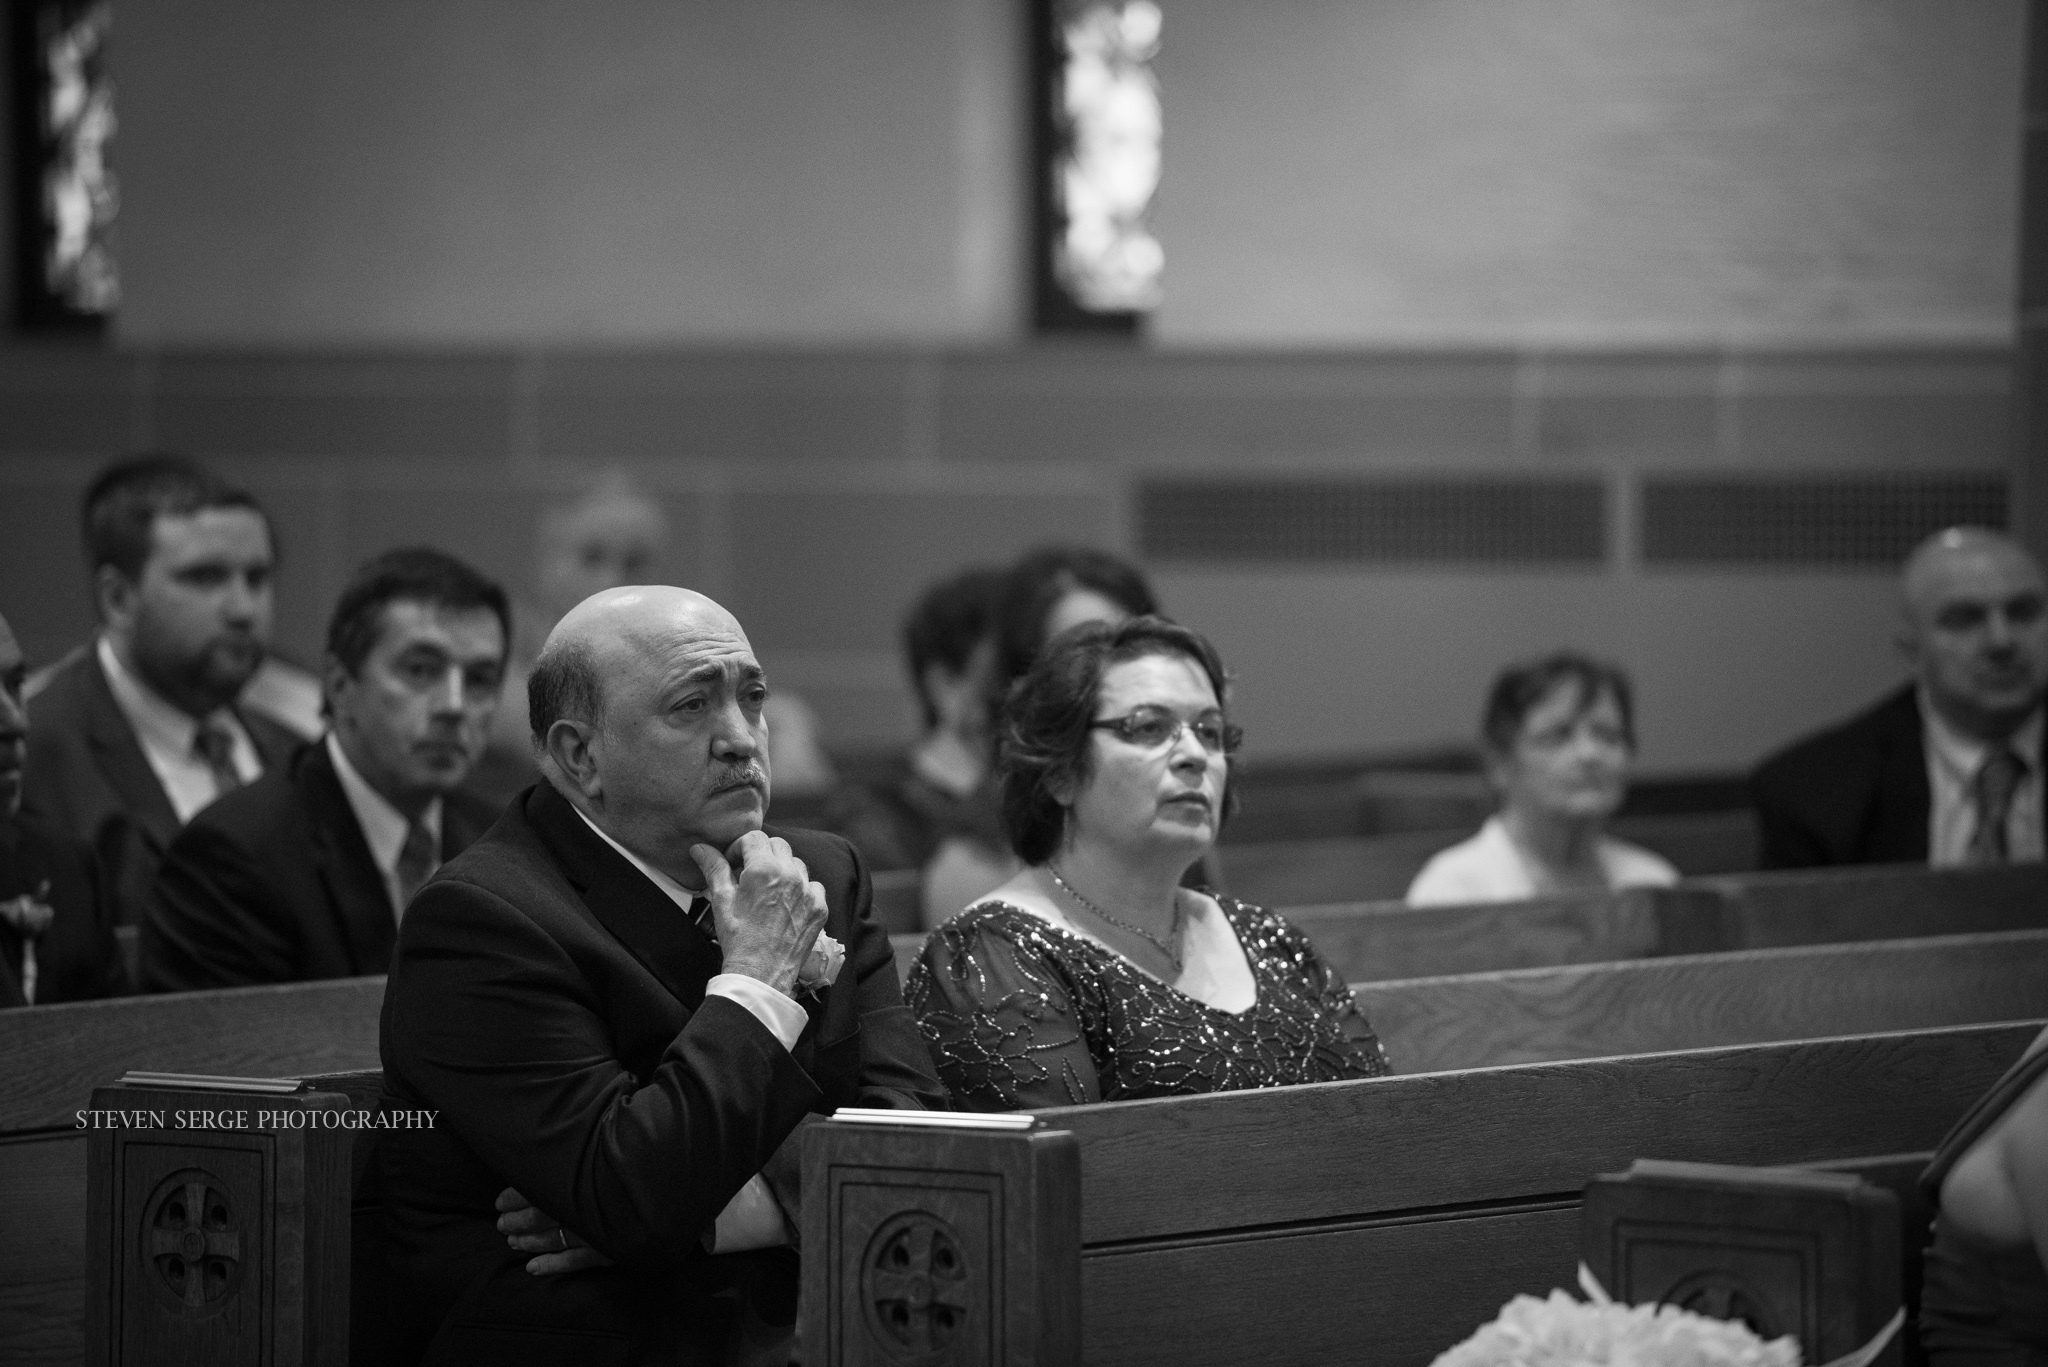 Scranton-wedding-photographer-fiorellis-steven-serge-13.jpg